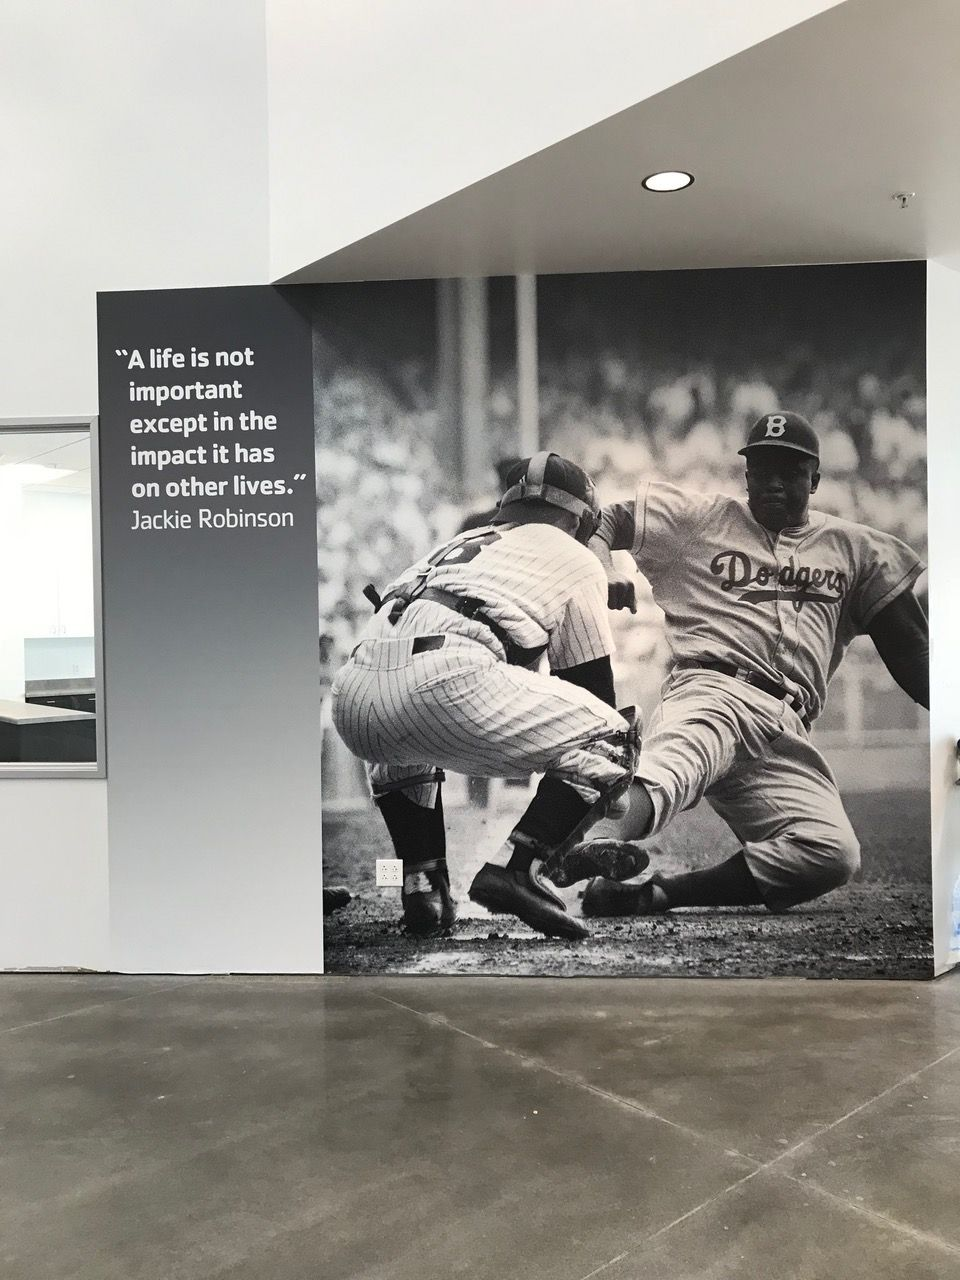 Jackie Robinson Quote and photo mural